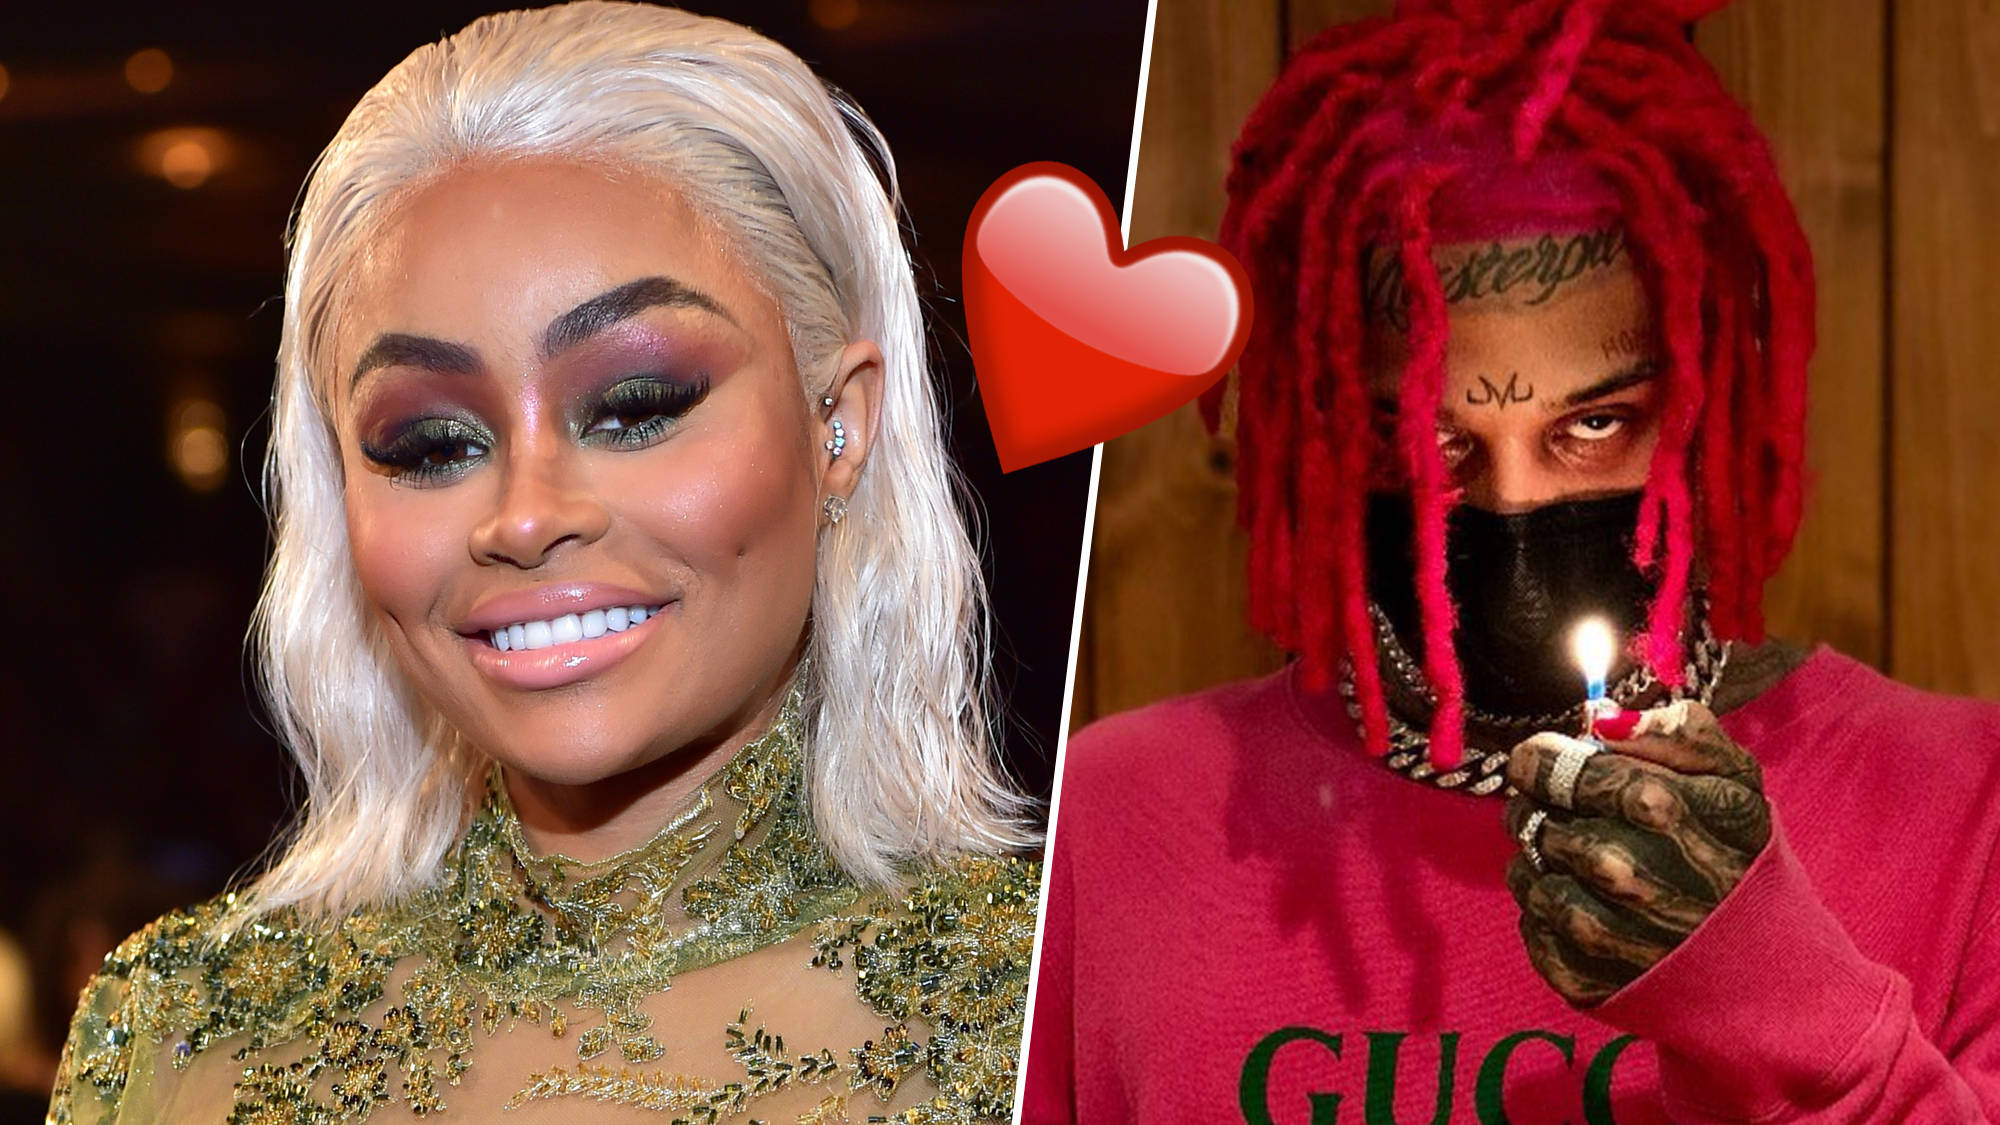 Blac Chyna's Fans Make Fun Of Her New BF, Kid Buu After She Gets Slammed For Making Pregnancy-Related Jokes